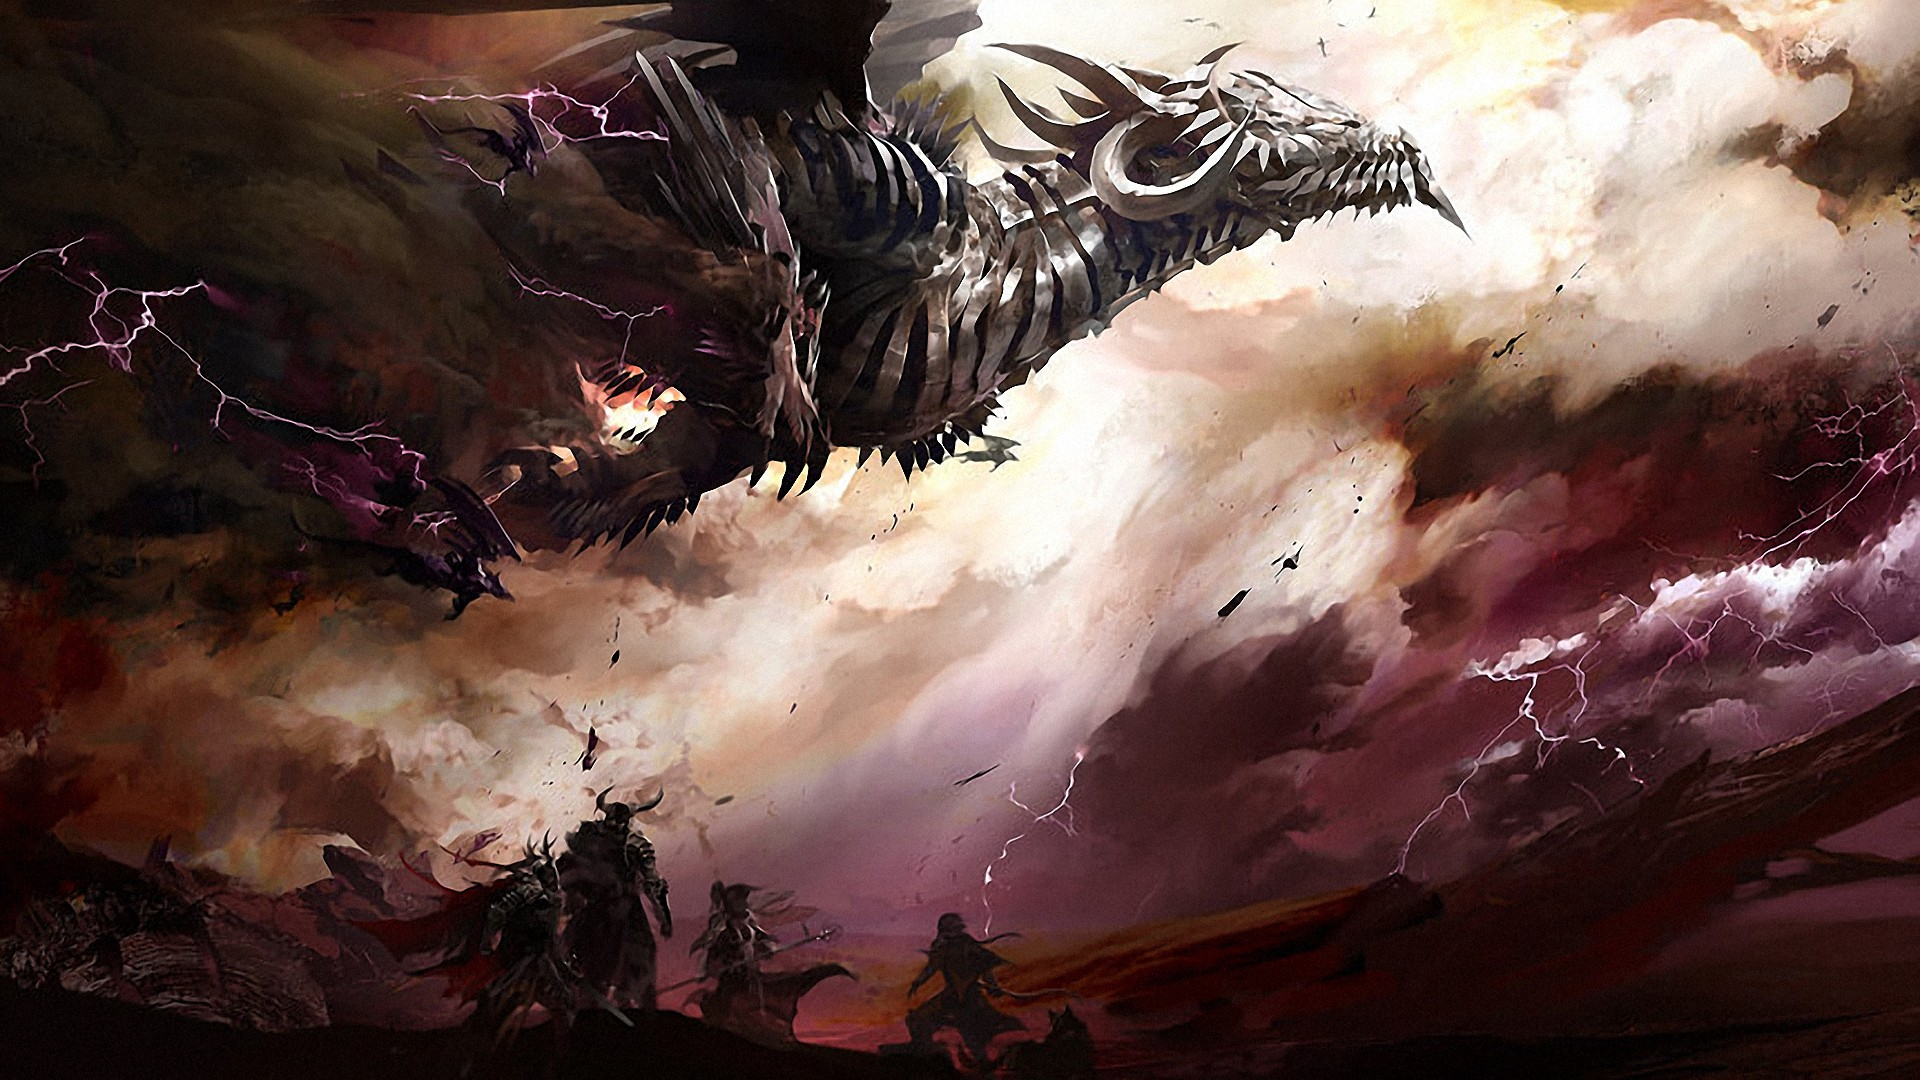 50 Guild Wars 2 Phone Wallpaper On Wallpapersafari